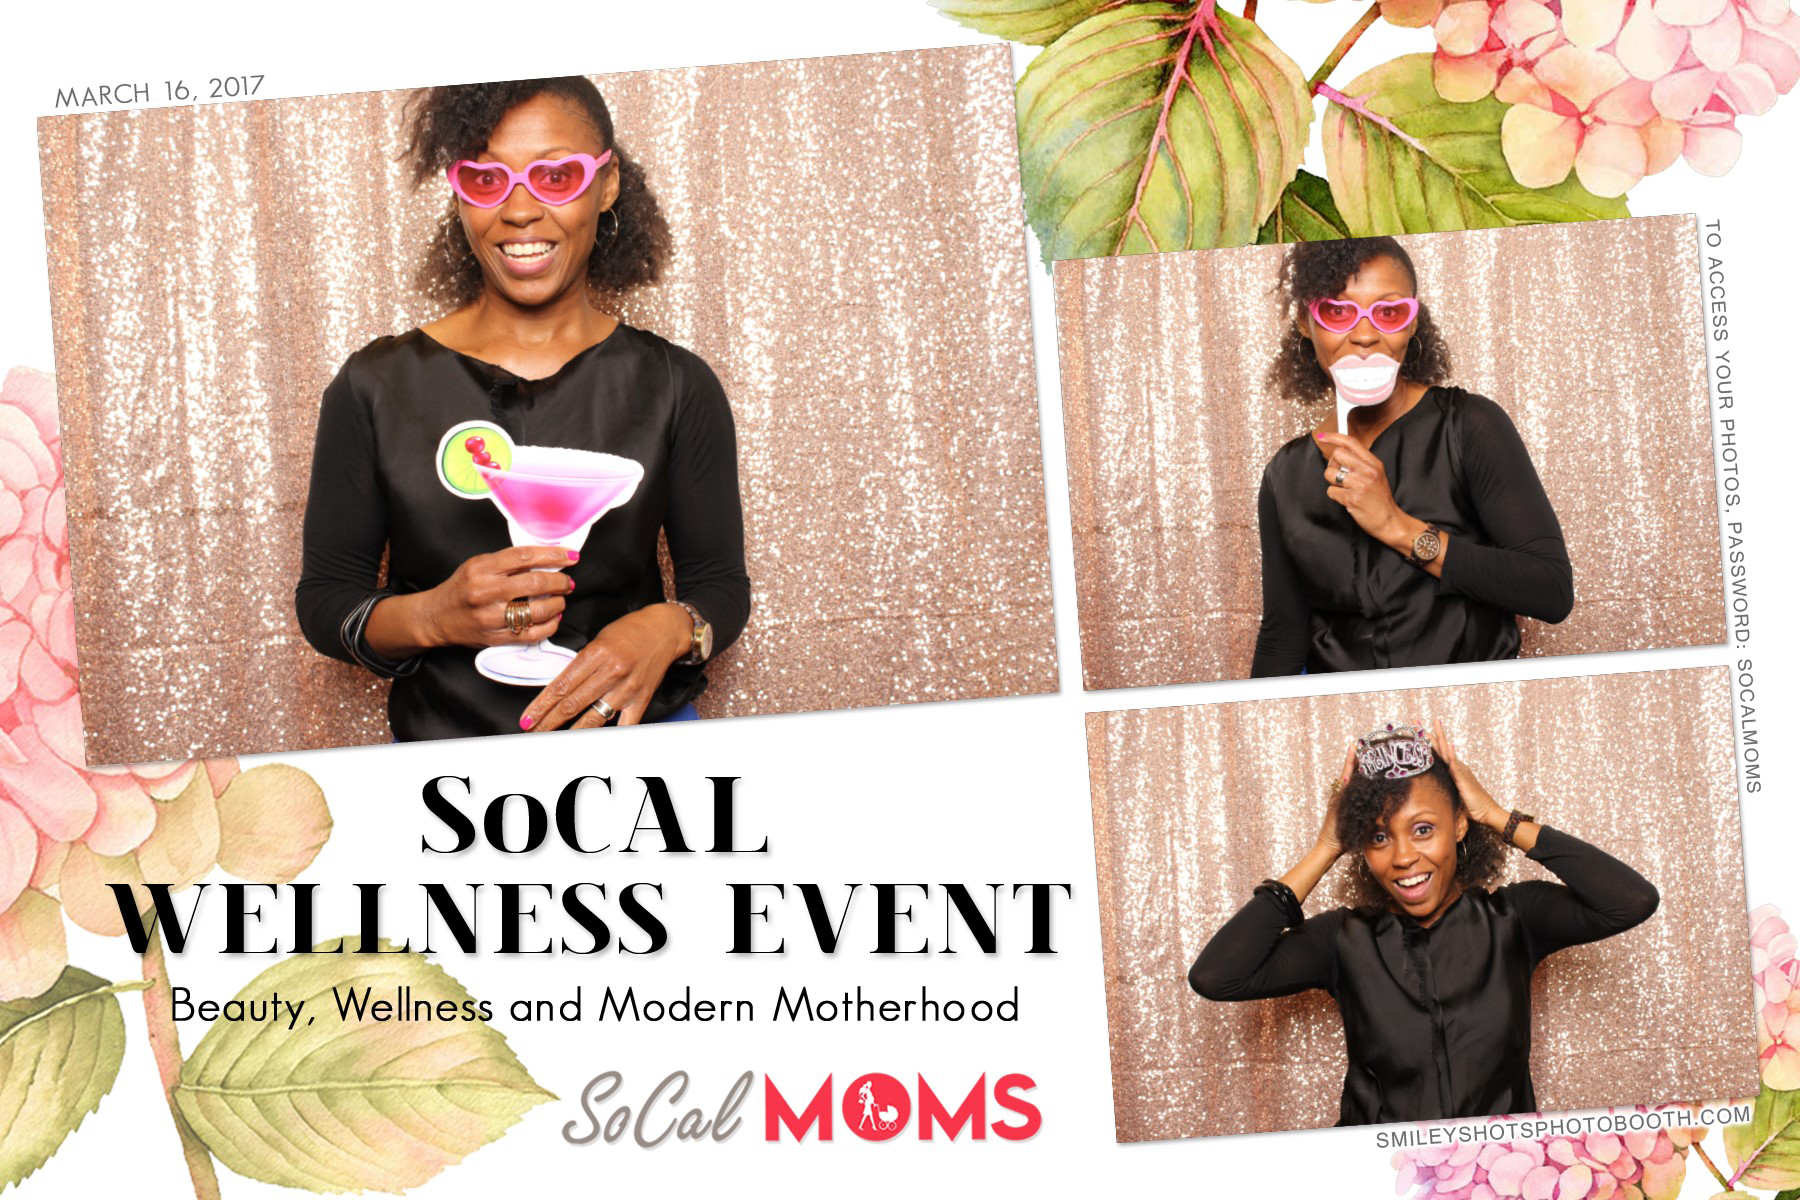 Socal Wellness Event Socal Moms Smiley Shots Photo Booth Photobooth (31).png